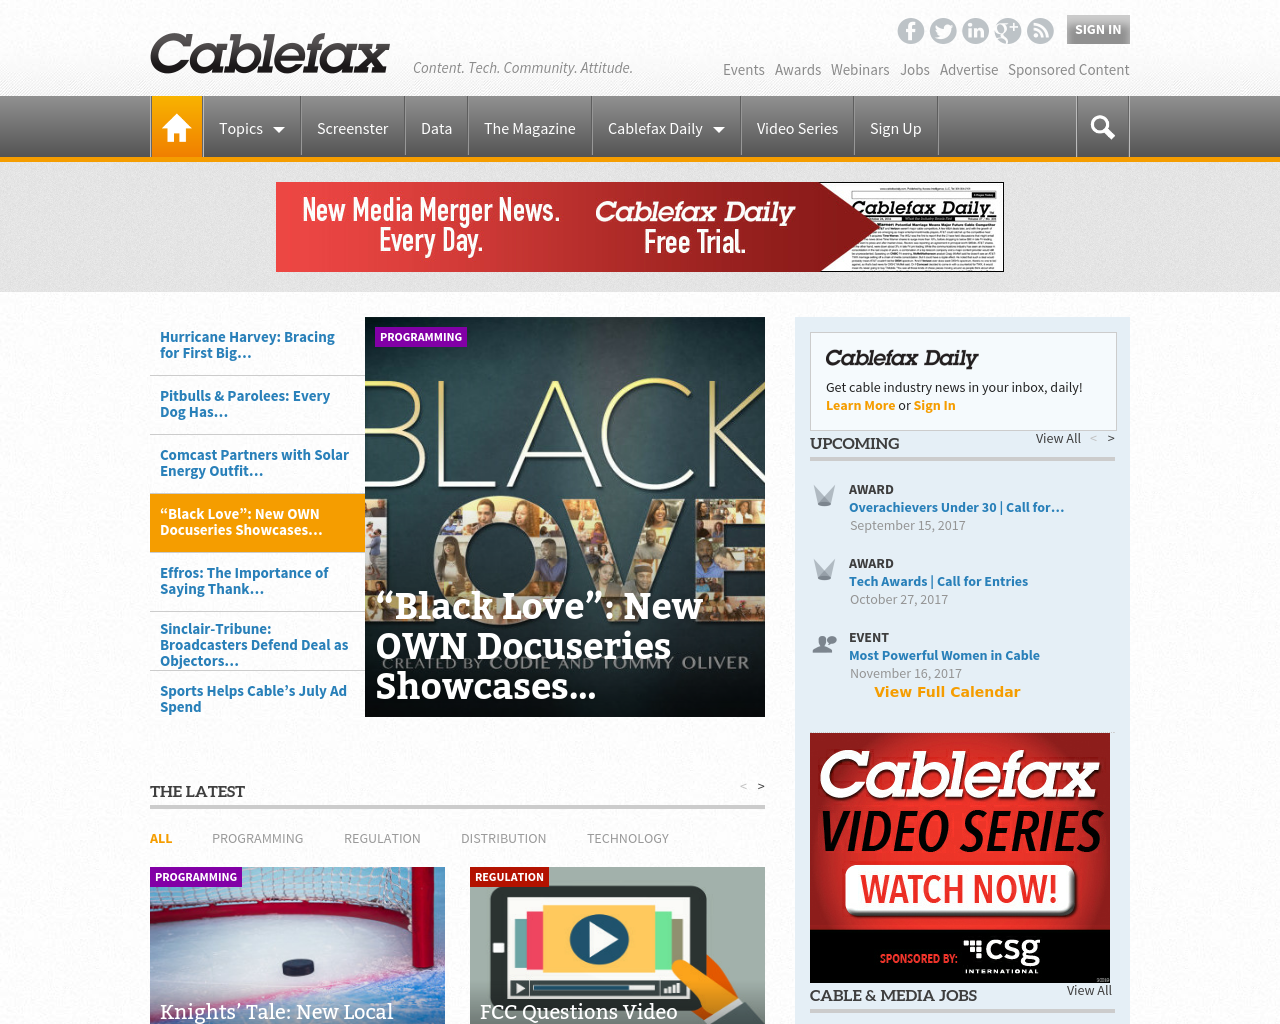 Cablefax-Advertising-Reviews-Pricing